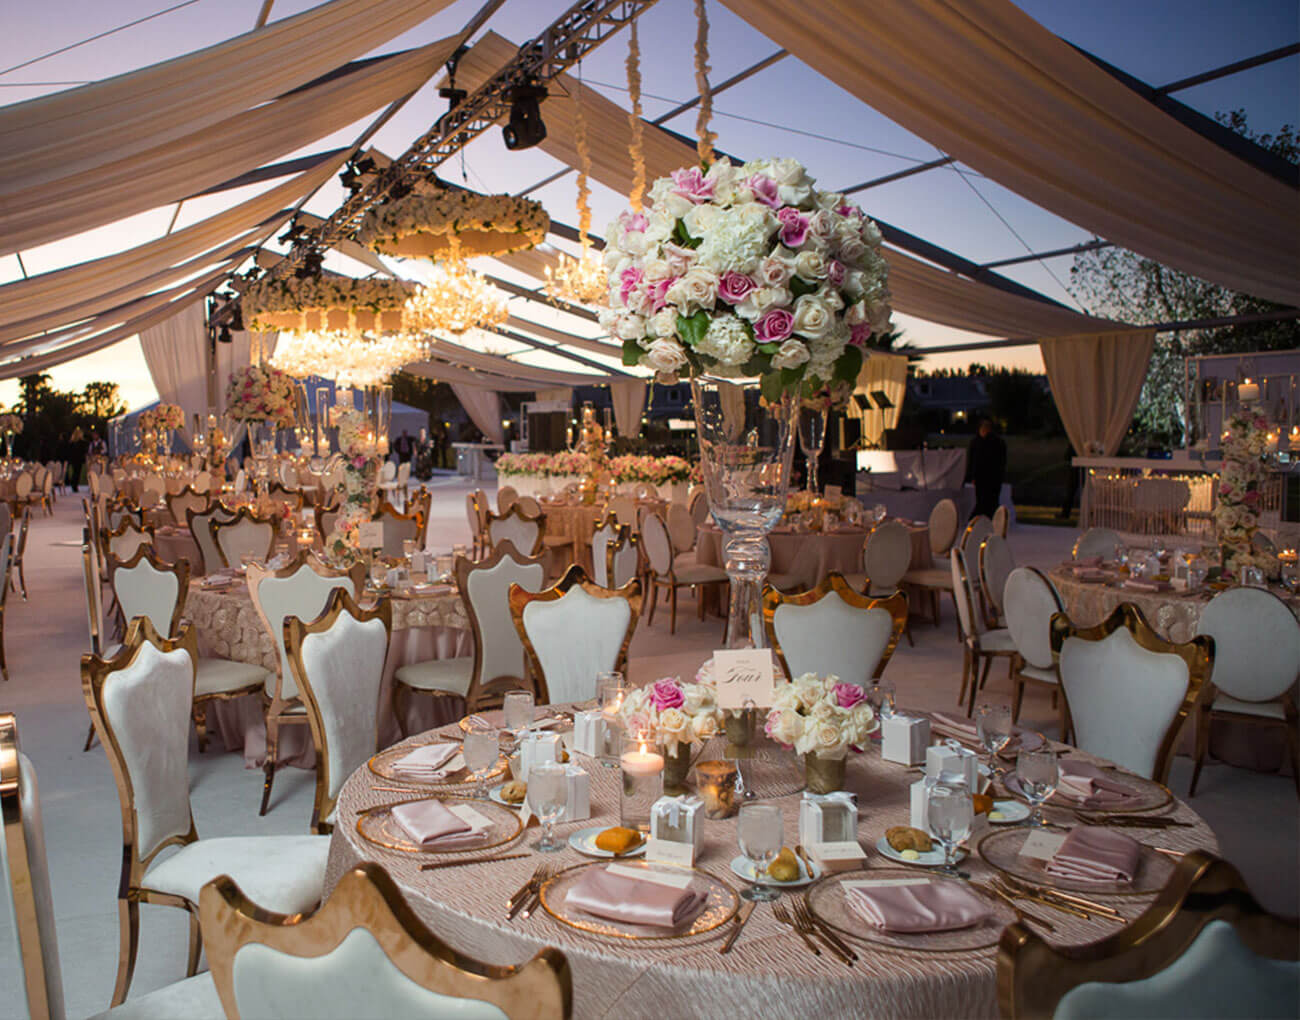 Reception under an outdoor marquee